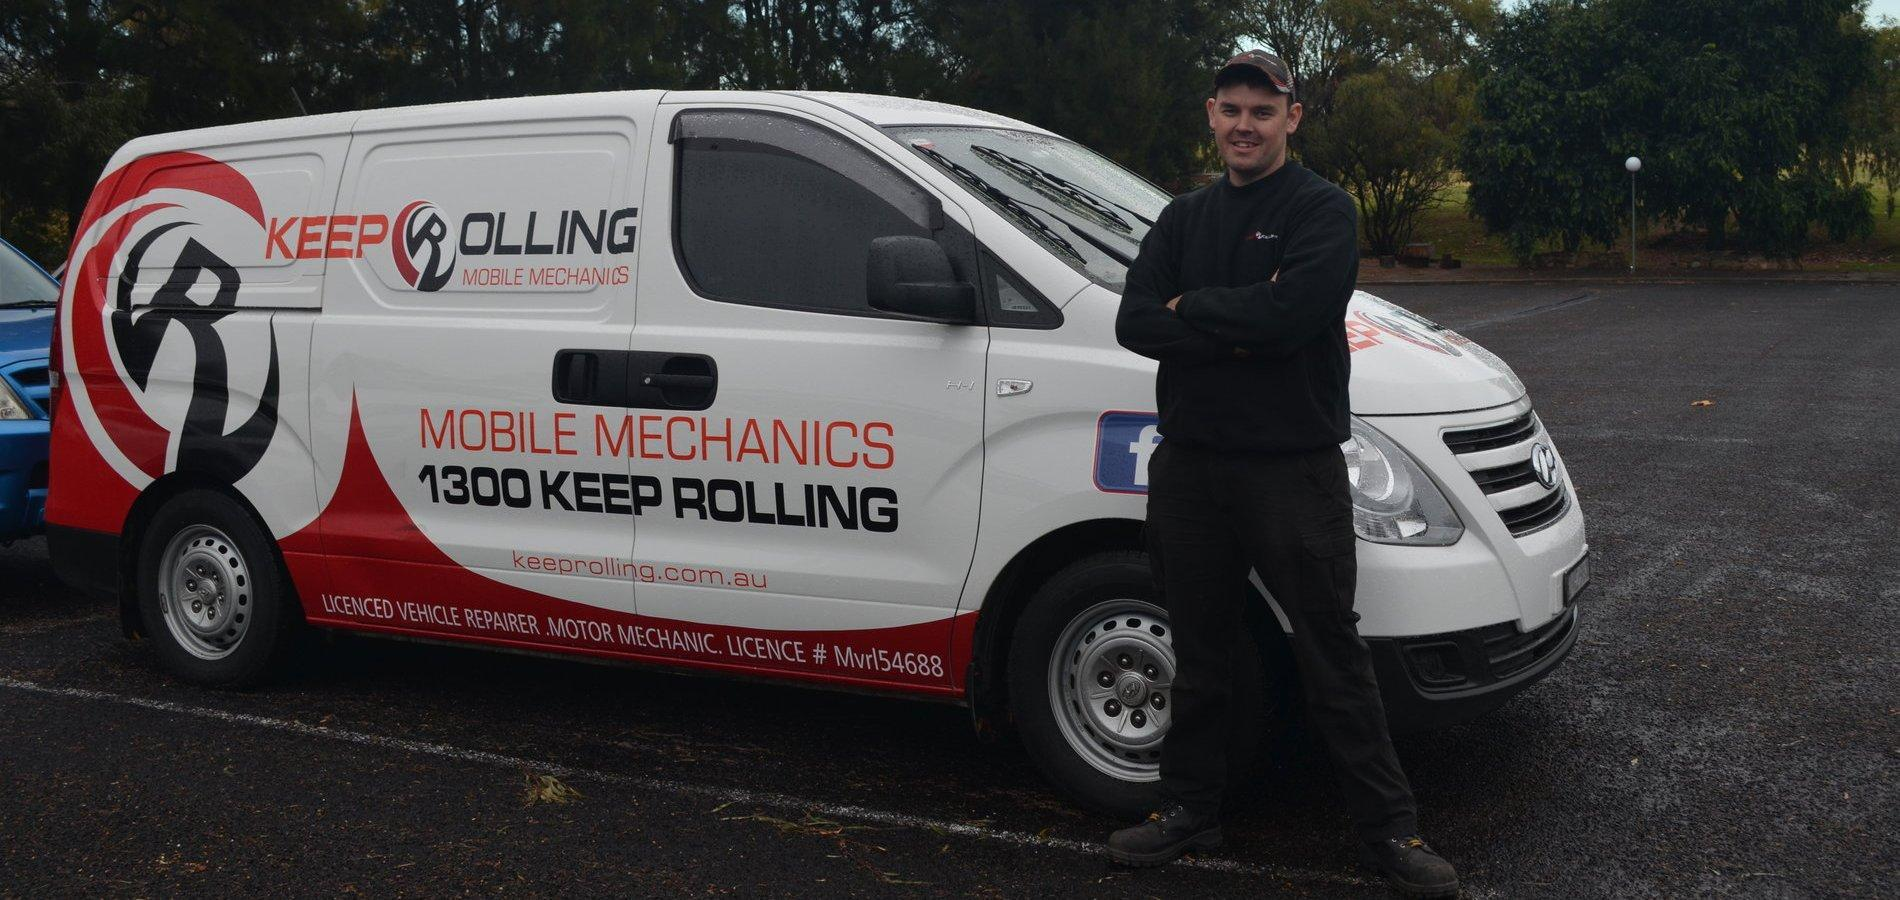 Western Sydney's Favorite Mobile Mechanic